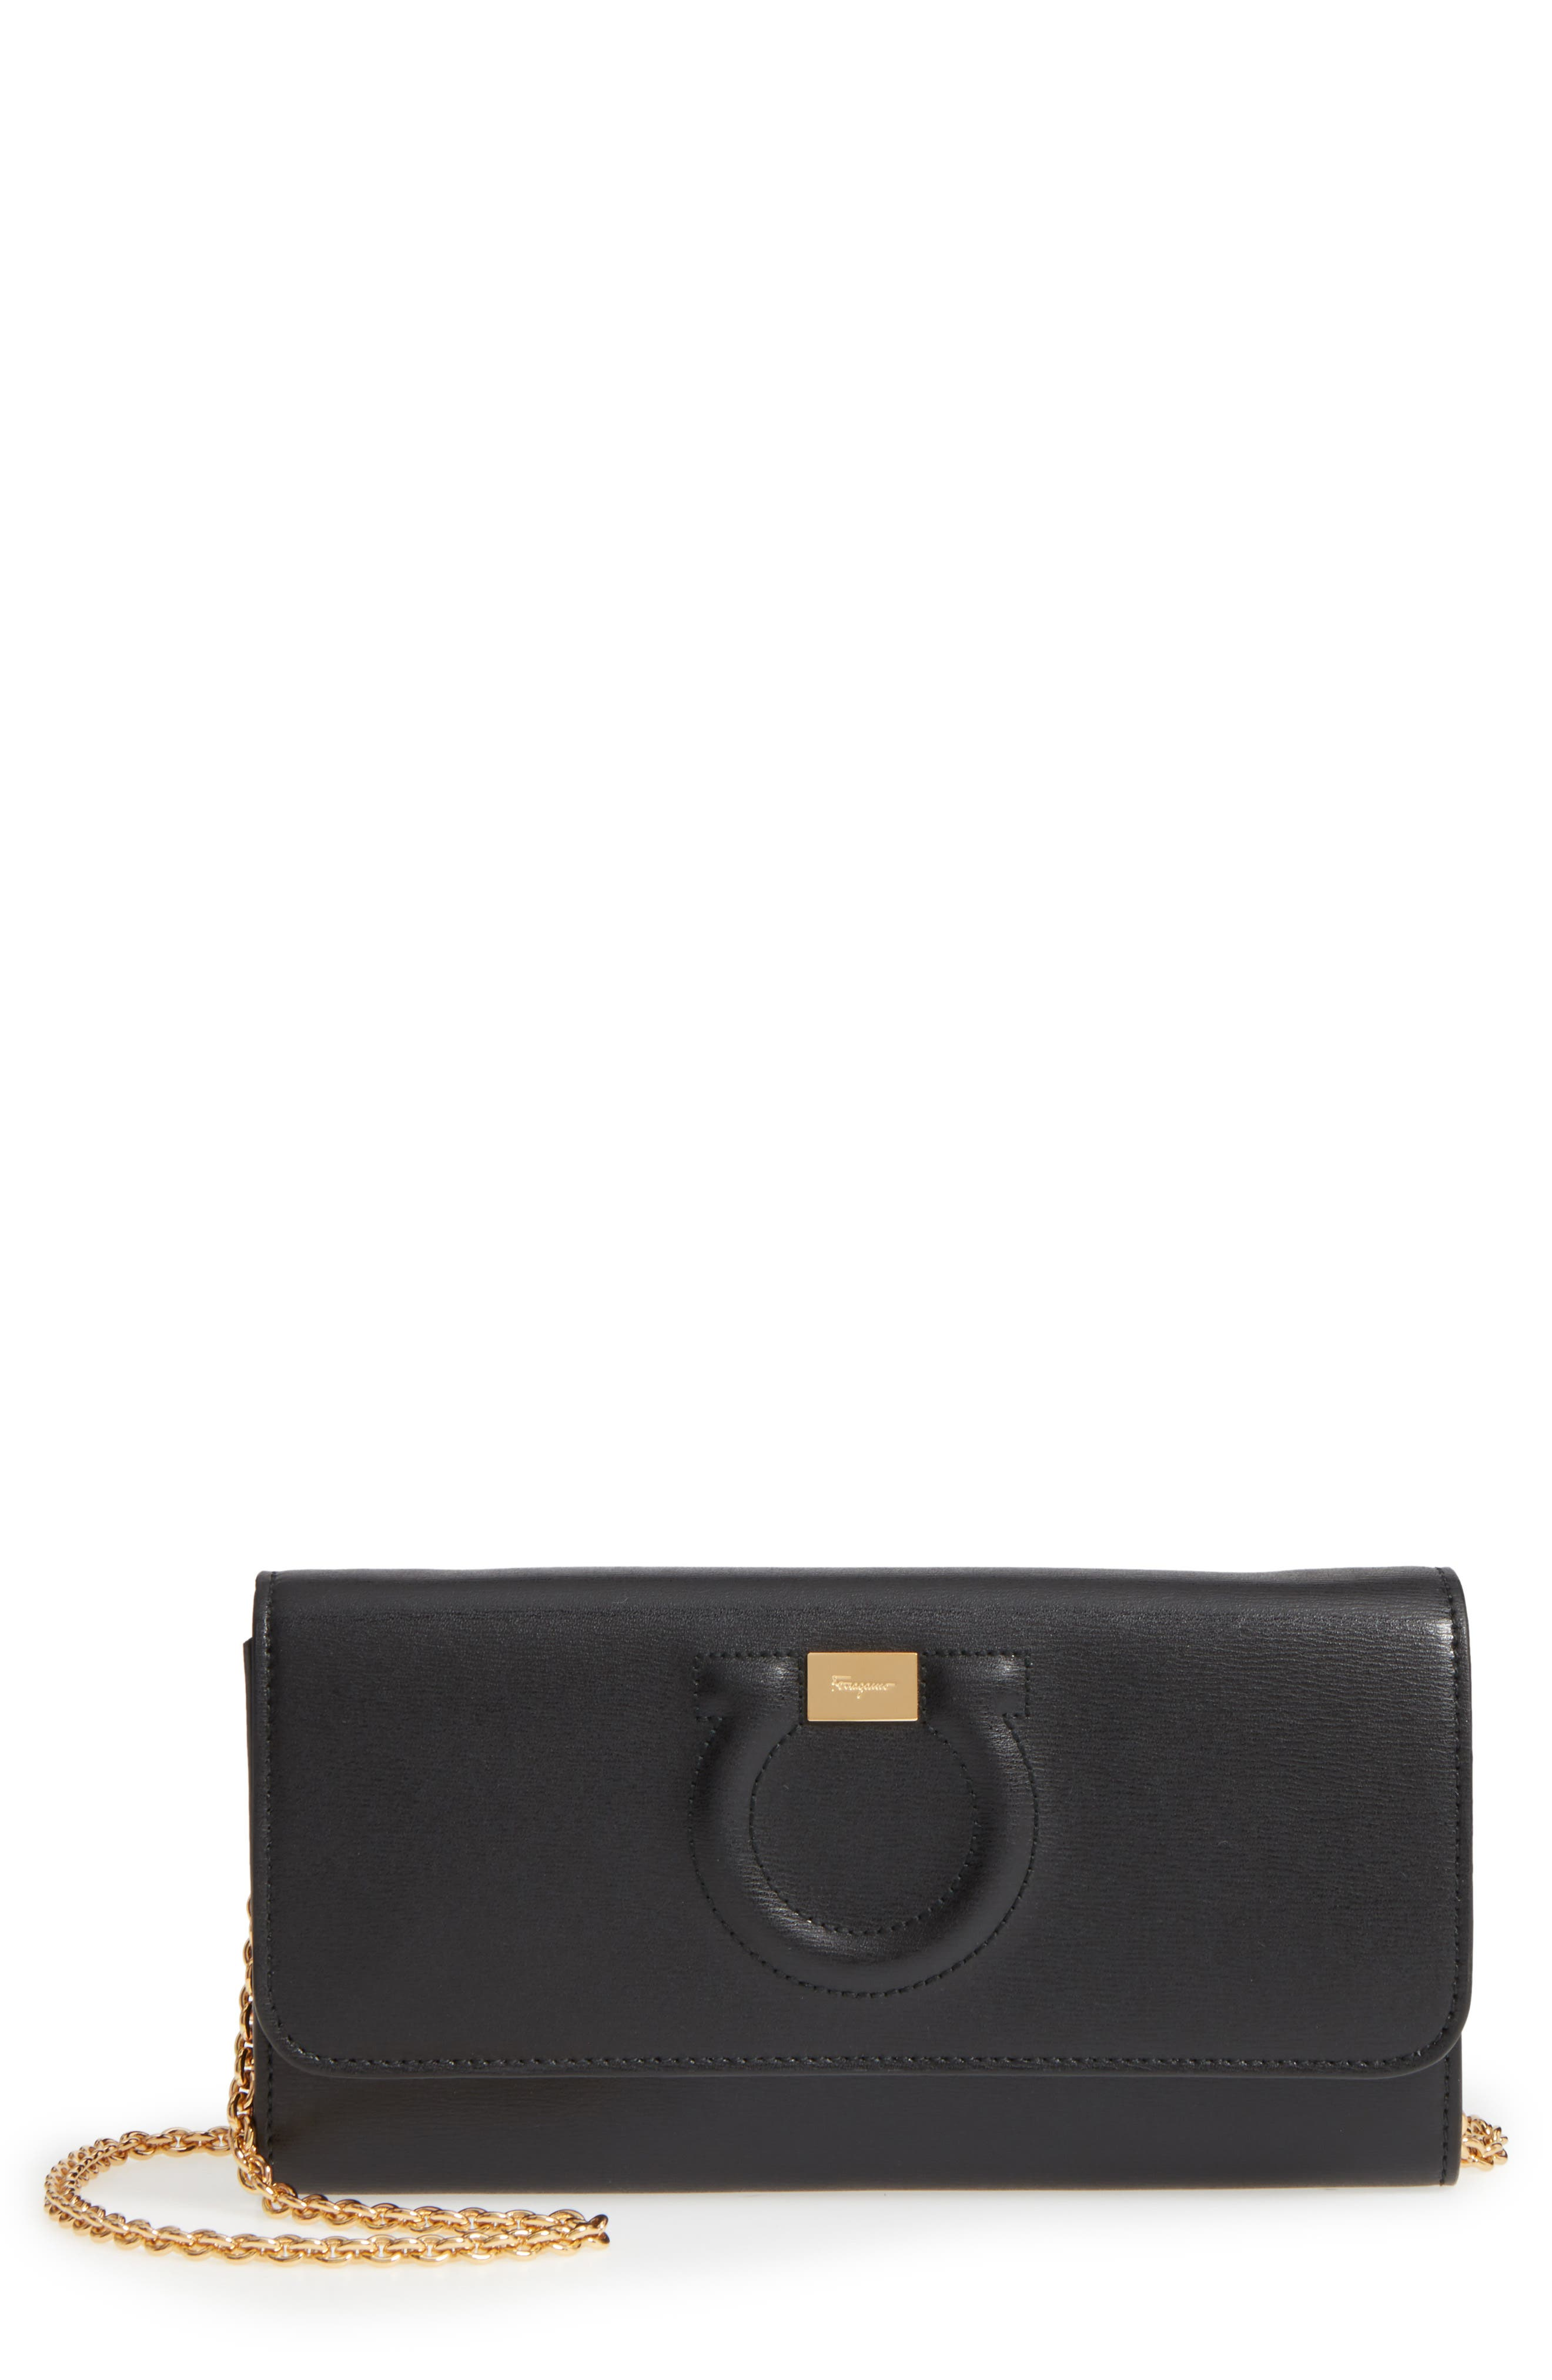 Salvatore Ferragamo Quilted Gancio Leather Wallet on a Chain